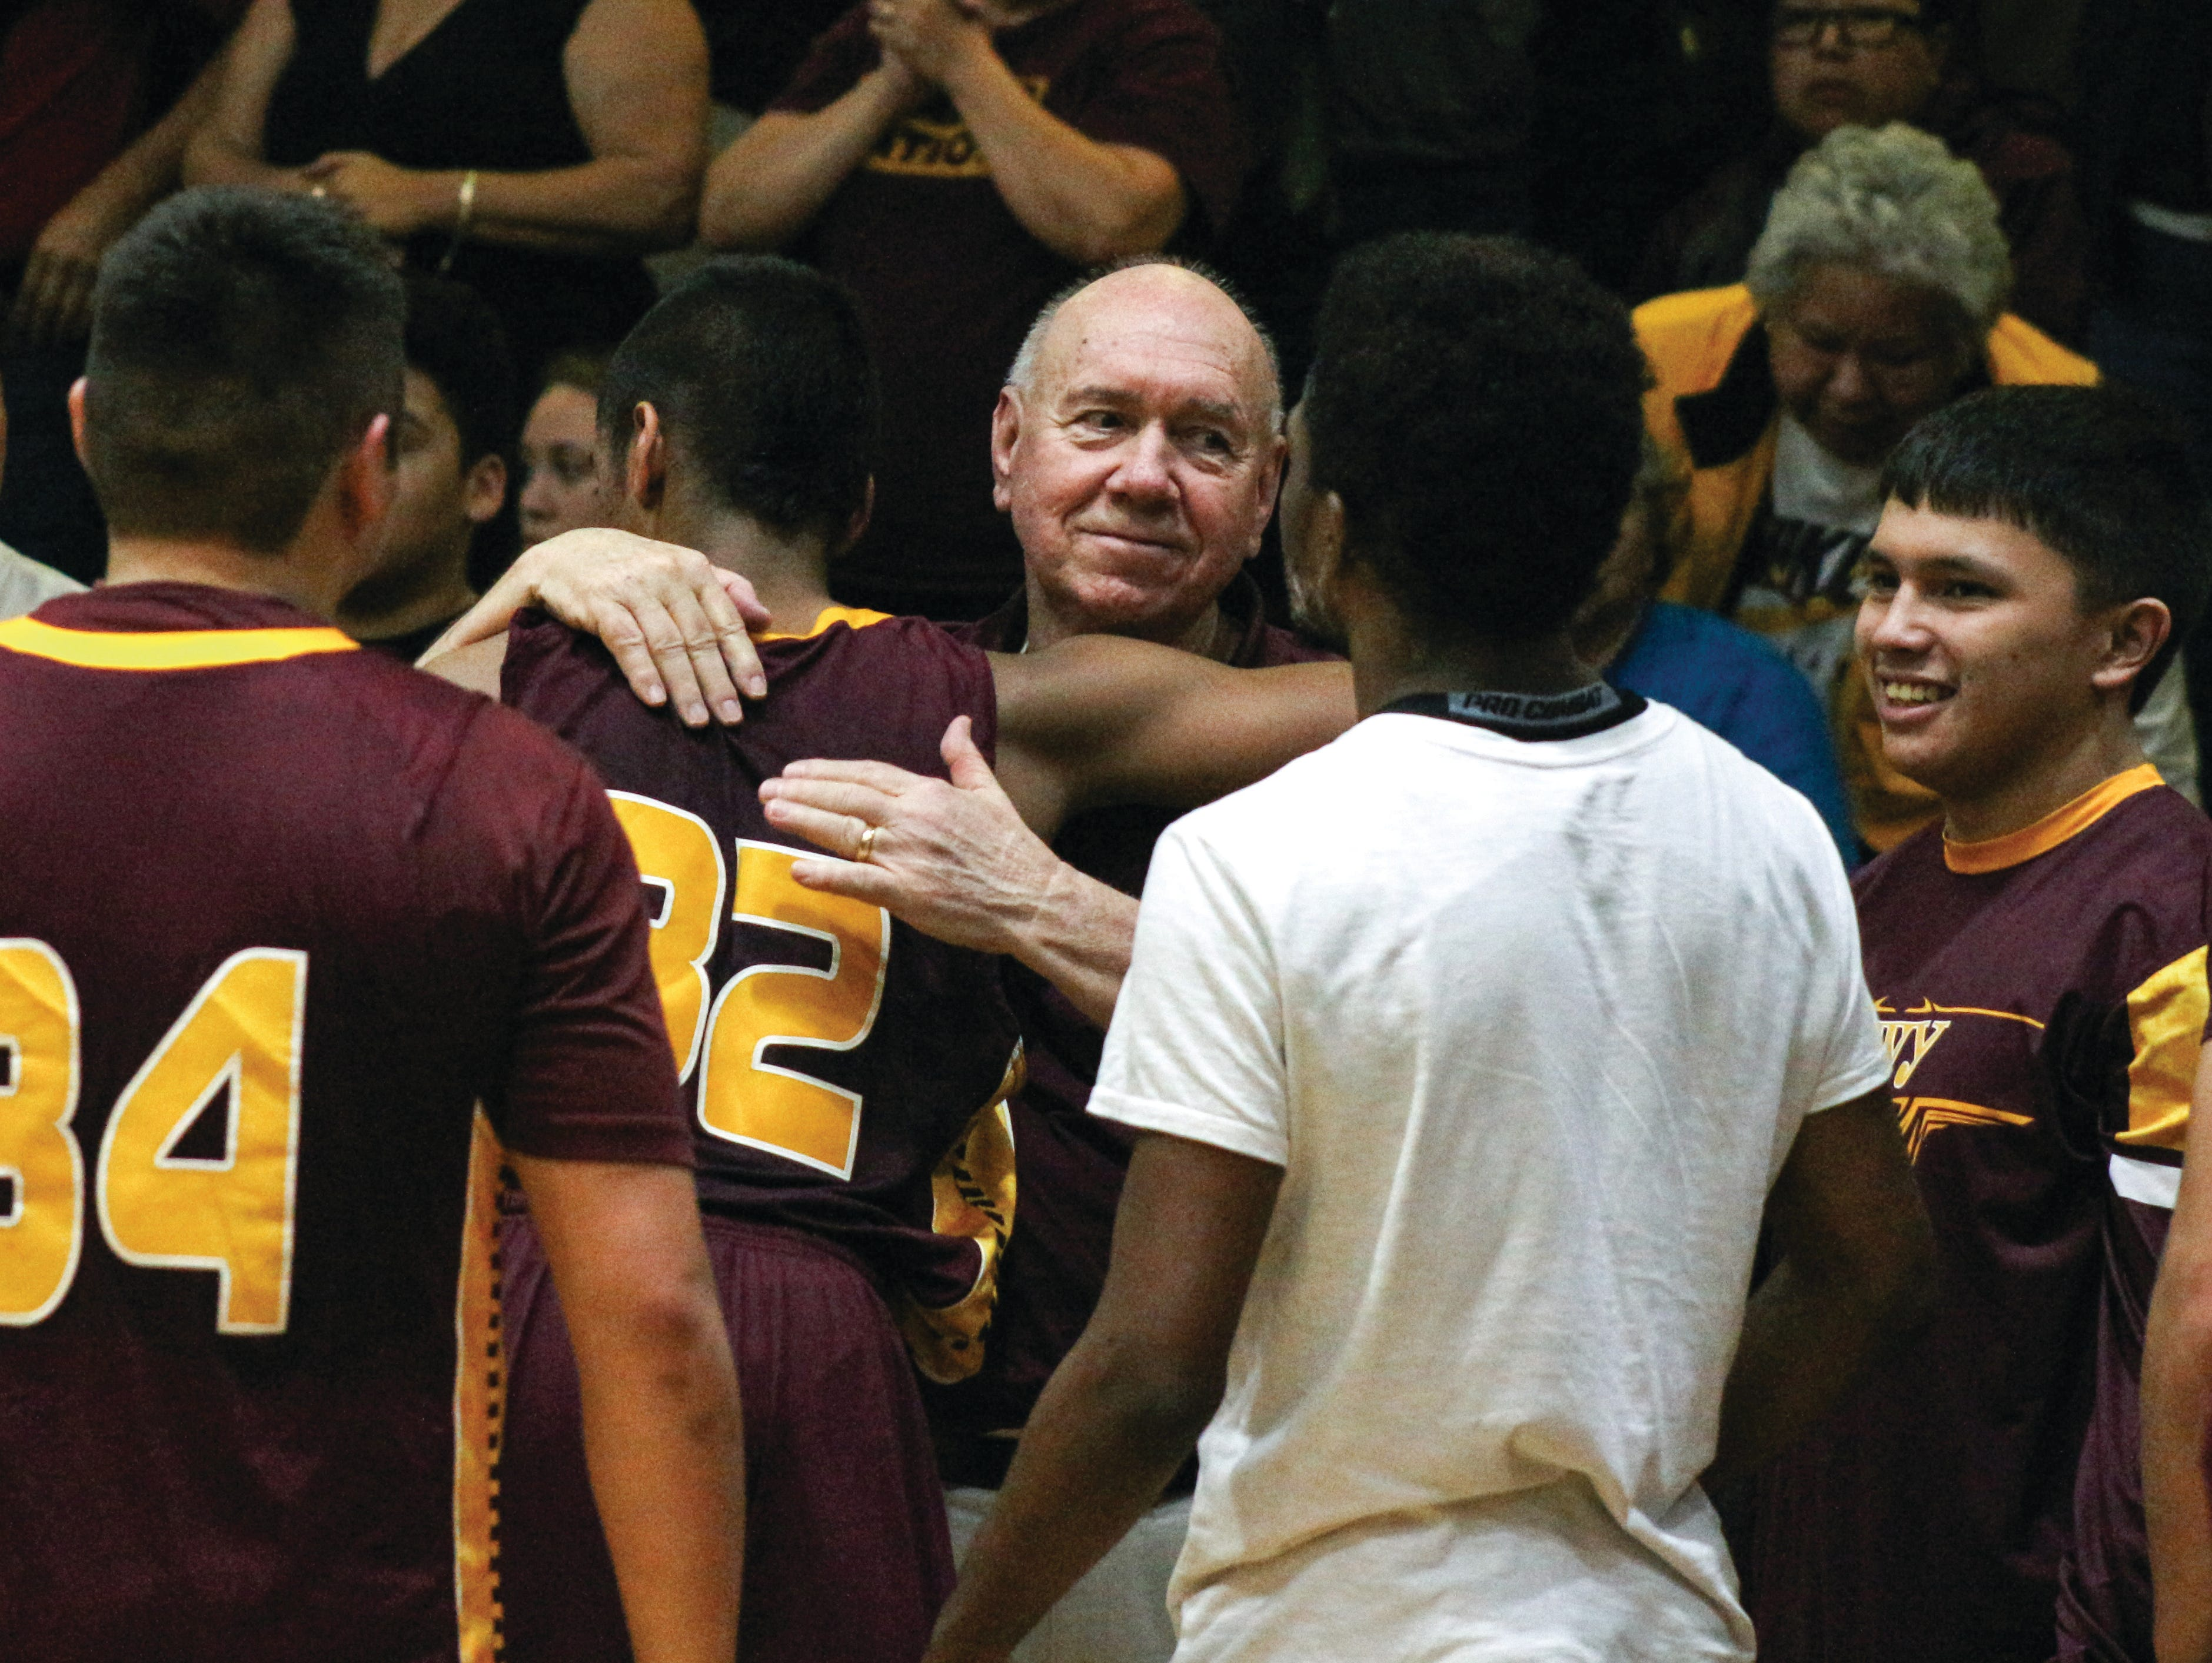 Former Cherokee boys basketball coach Willis Tullos is congratulated by his players after winning his 600th career game in January.